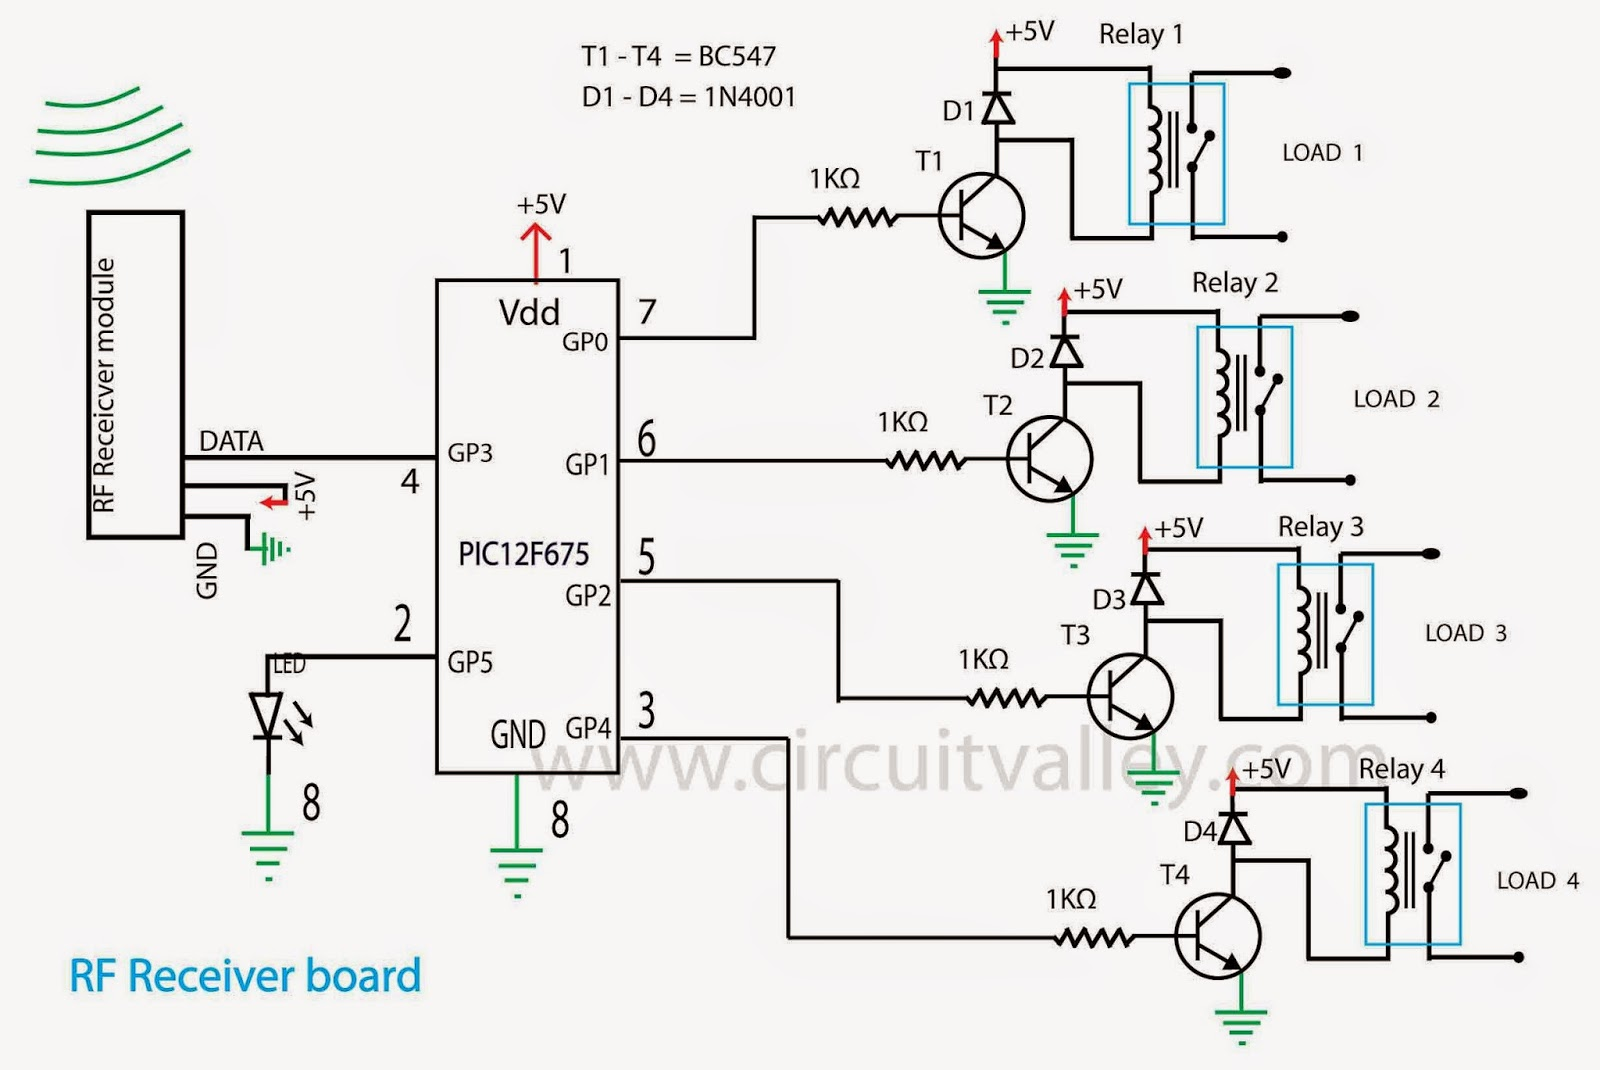 Embedded Engineering Low Cost Rf Control 4 Channel Relay Board Circuit And Working Complete Source Code Is Available At Github Repo With Hex Files